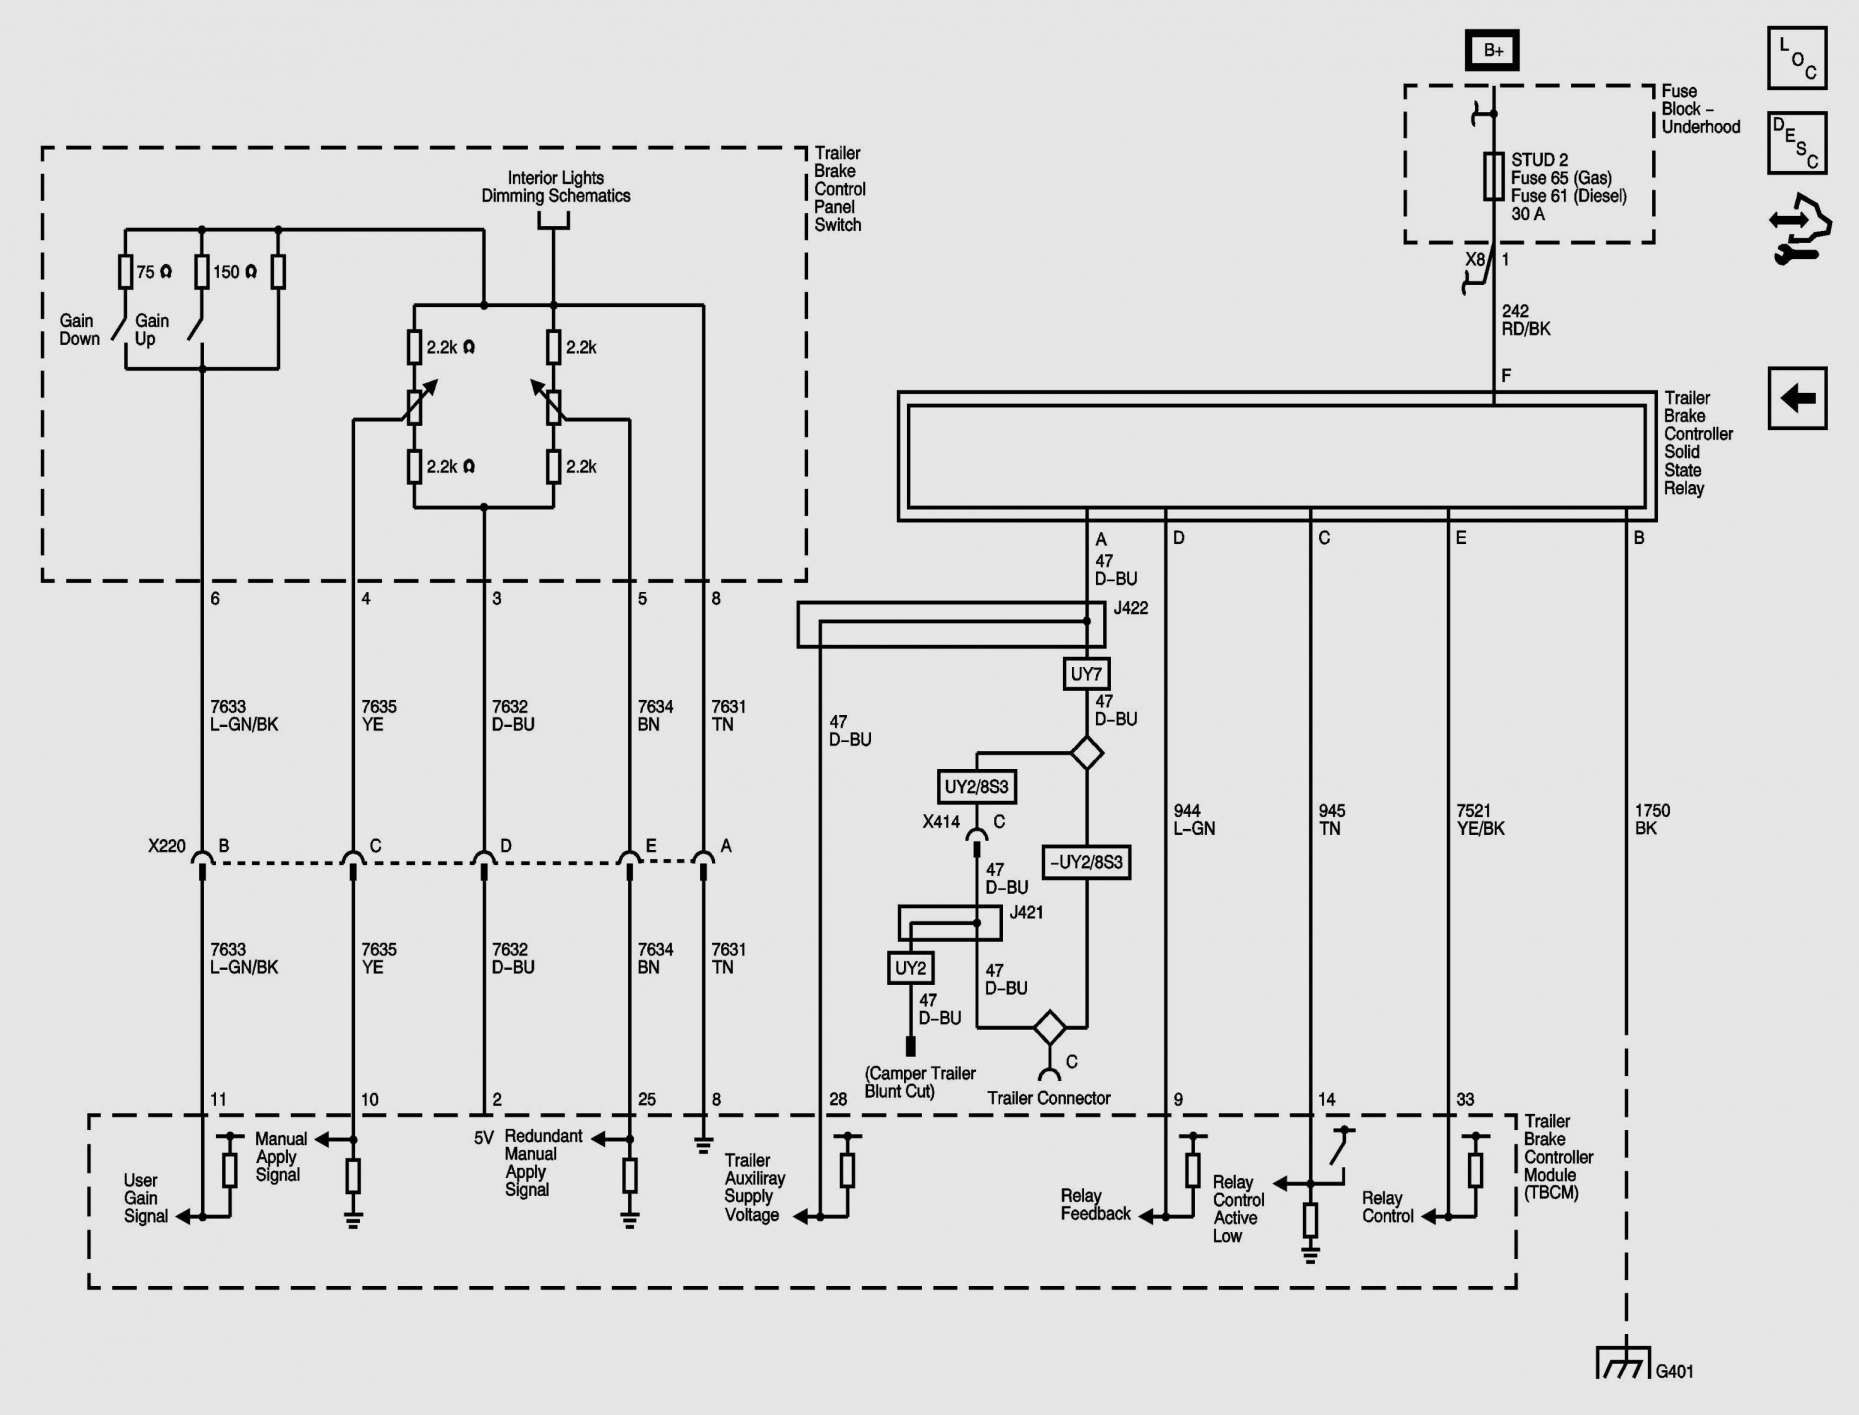 16+ 1993 Chevy Truck Wiring Diagram - Truck Diagram - Wiringg.net in 2020 |  Trailer wiring diagram, Tekonsha, DiagramPinterest